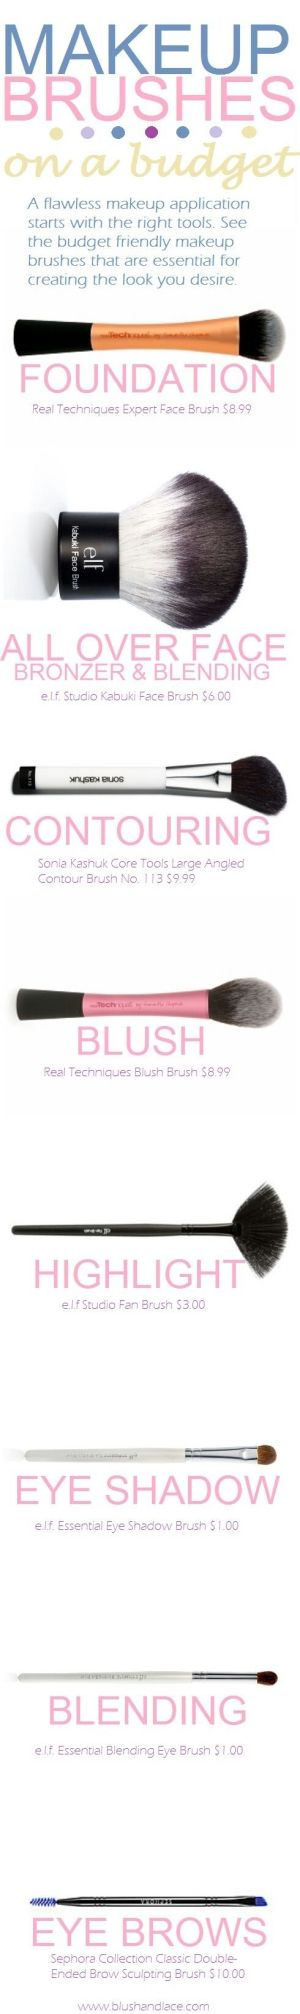 Makeup brushes for your whole face for under $50 by shof23